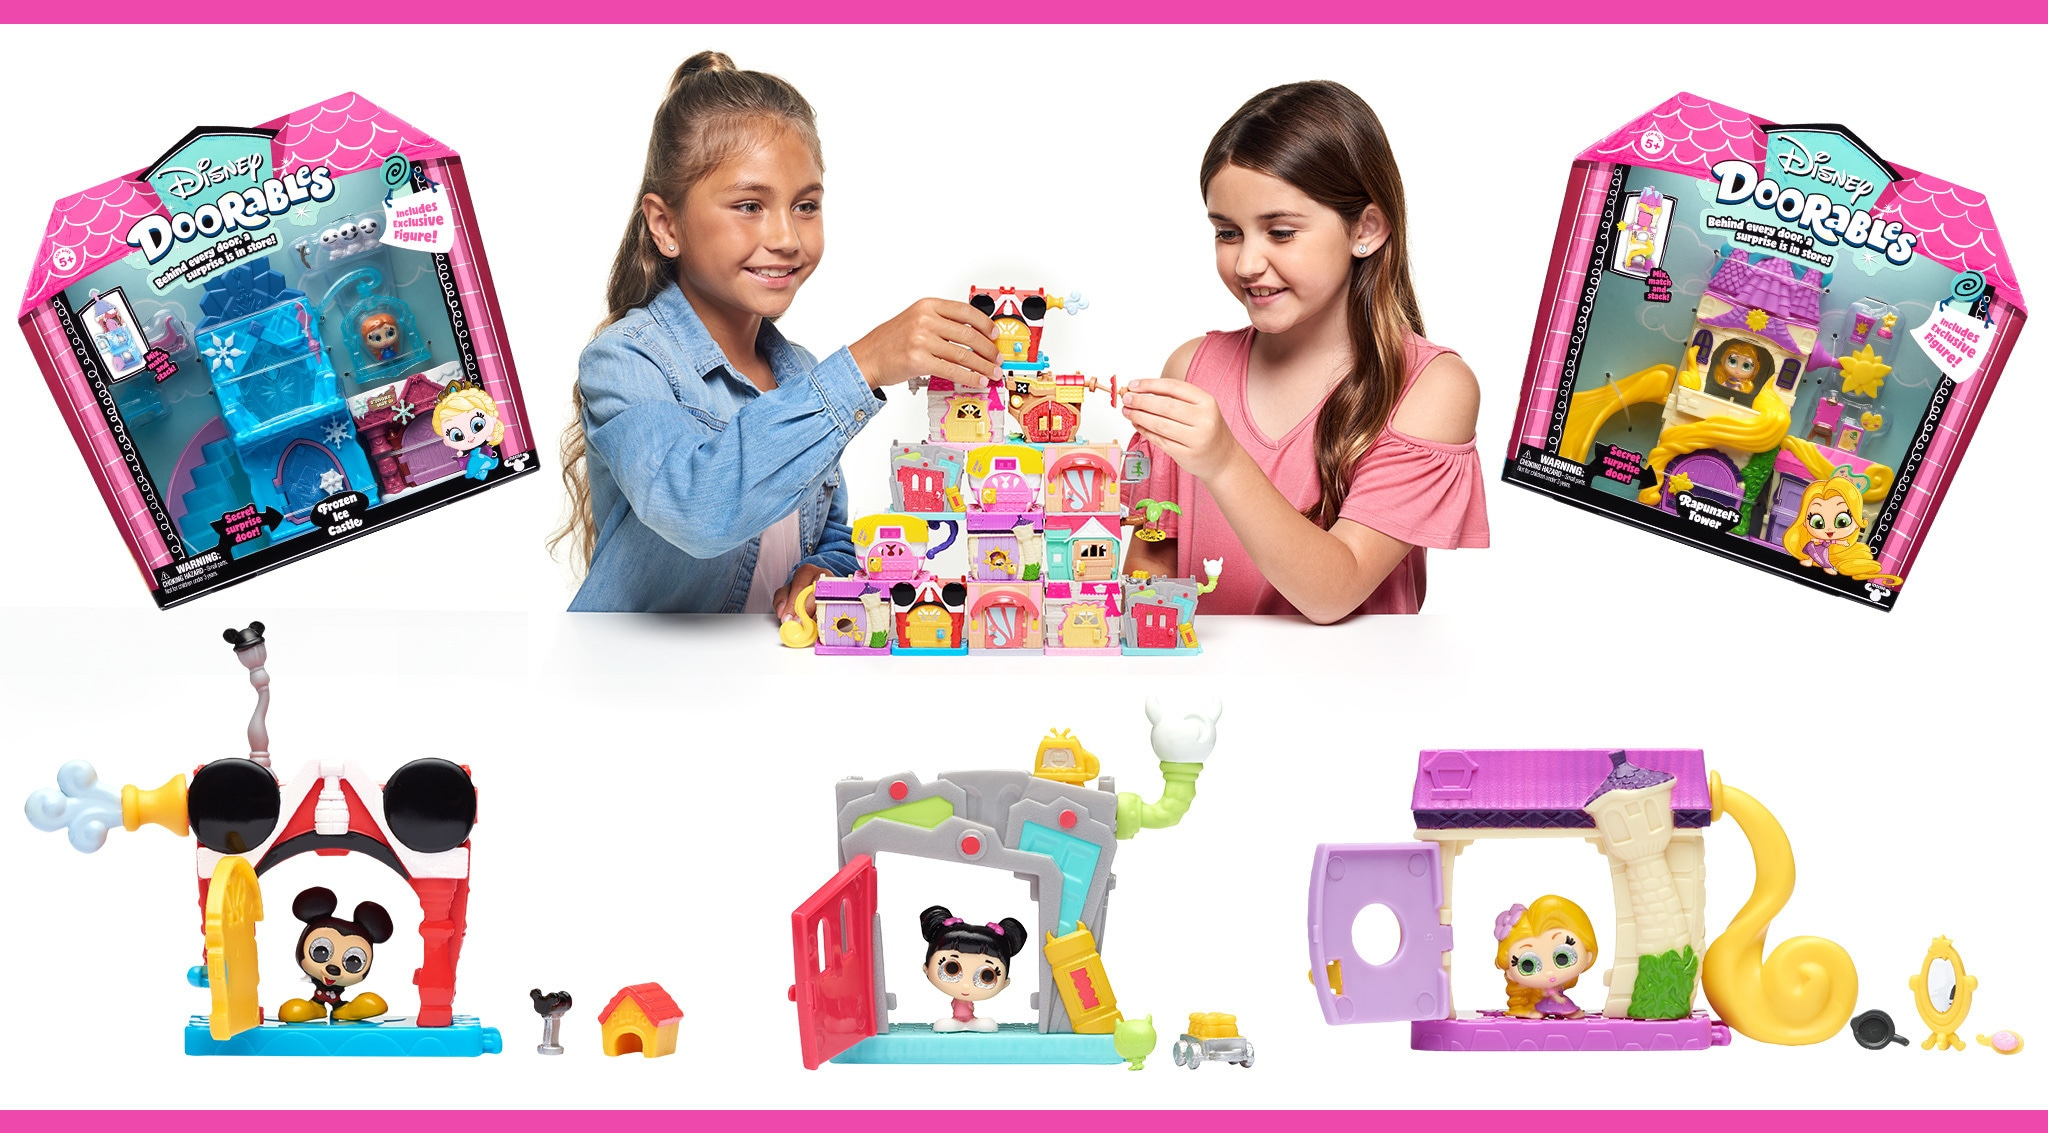 Image featuring Disney Doorable products including Mickey Mouse, Boo and Rapunzel with two girls playing with the toys.